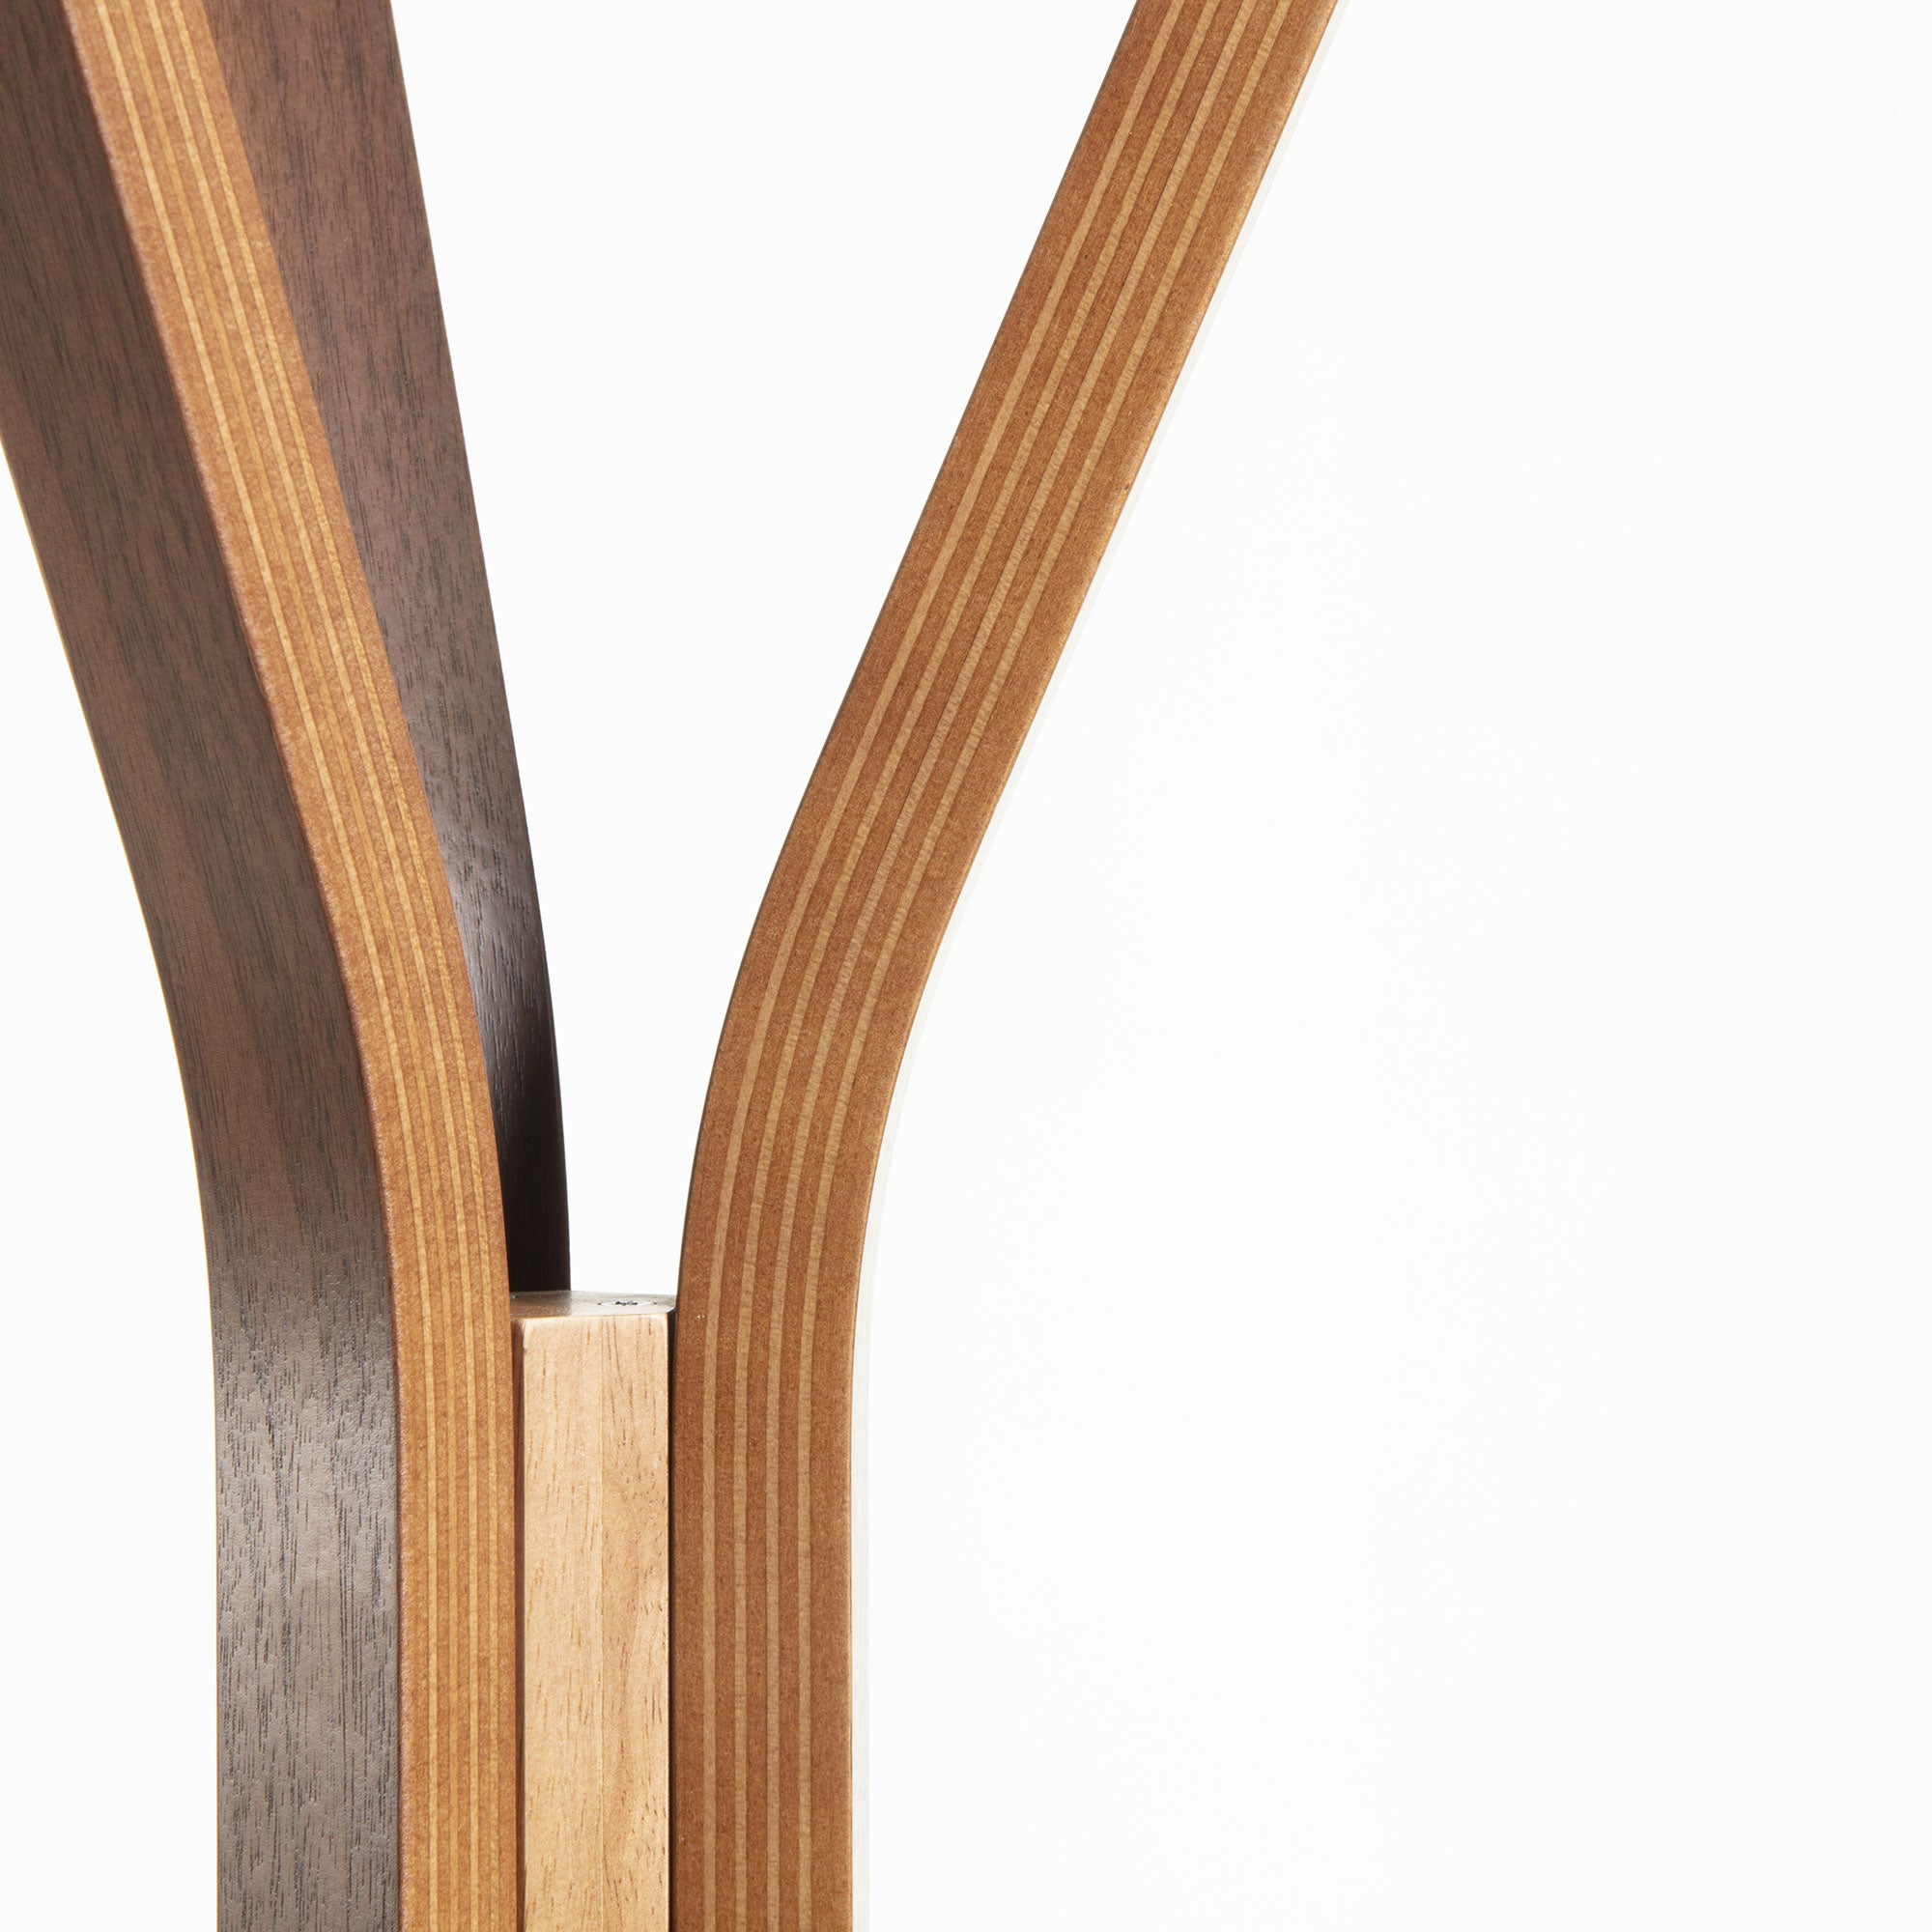 Reyes Coat Rack - Walnut Veneer Finish and Rubberwood, Coat Rack - Home-Buy Interiors